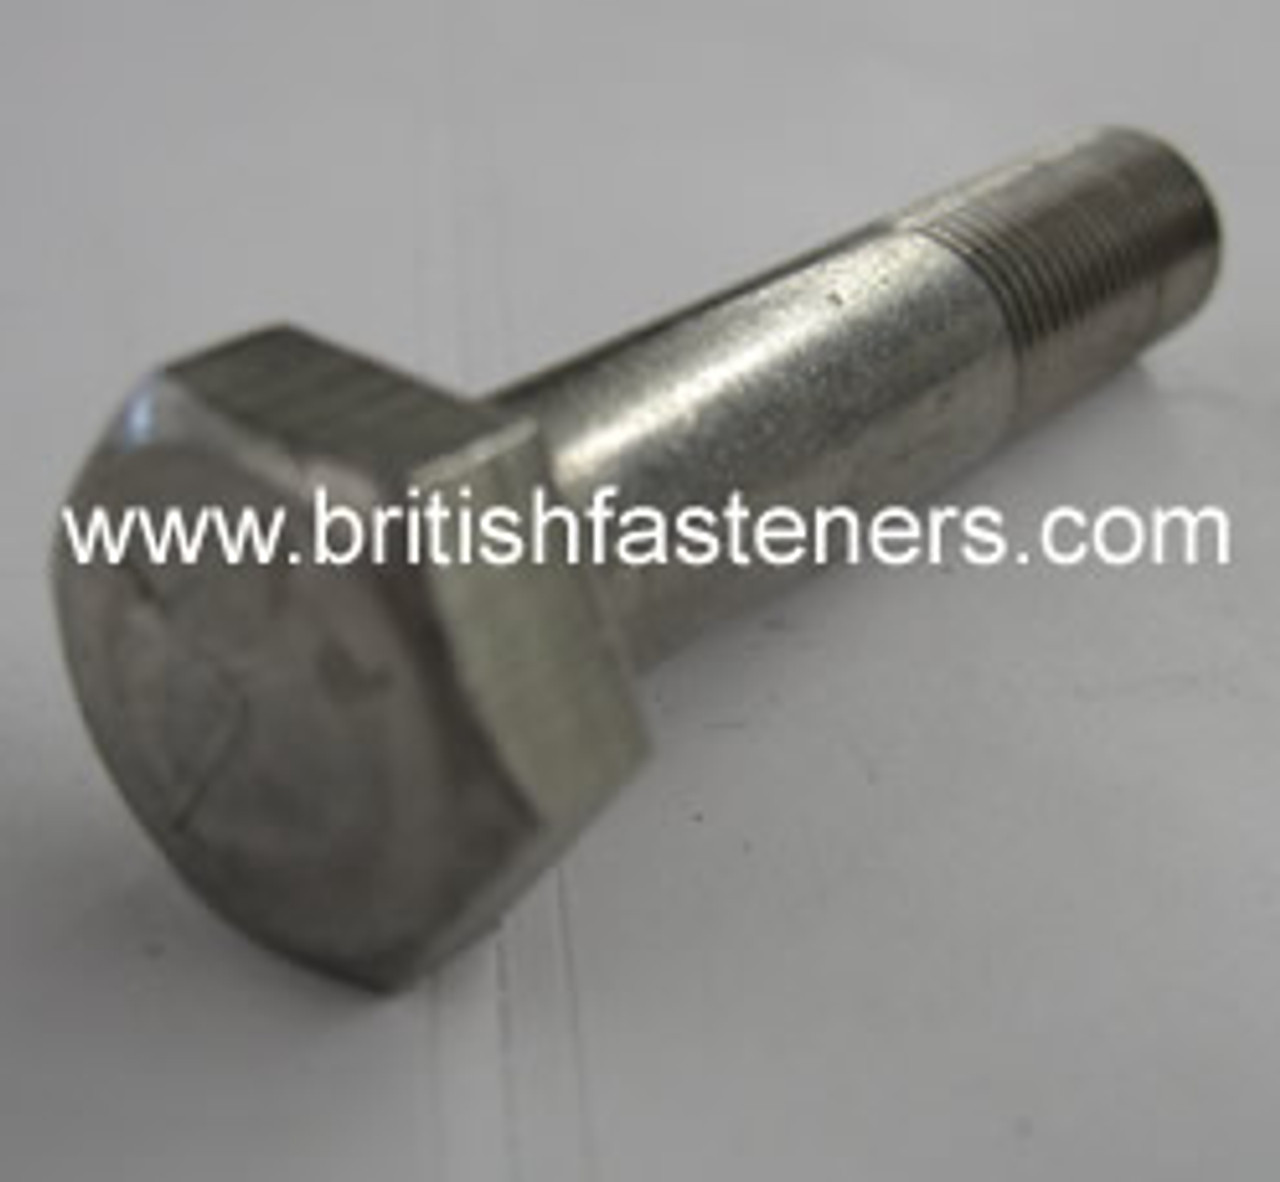 "BSF Stainless BOLT 3/8 - 20 x 2"" - (6465)"